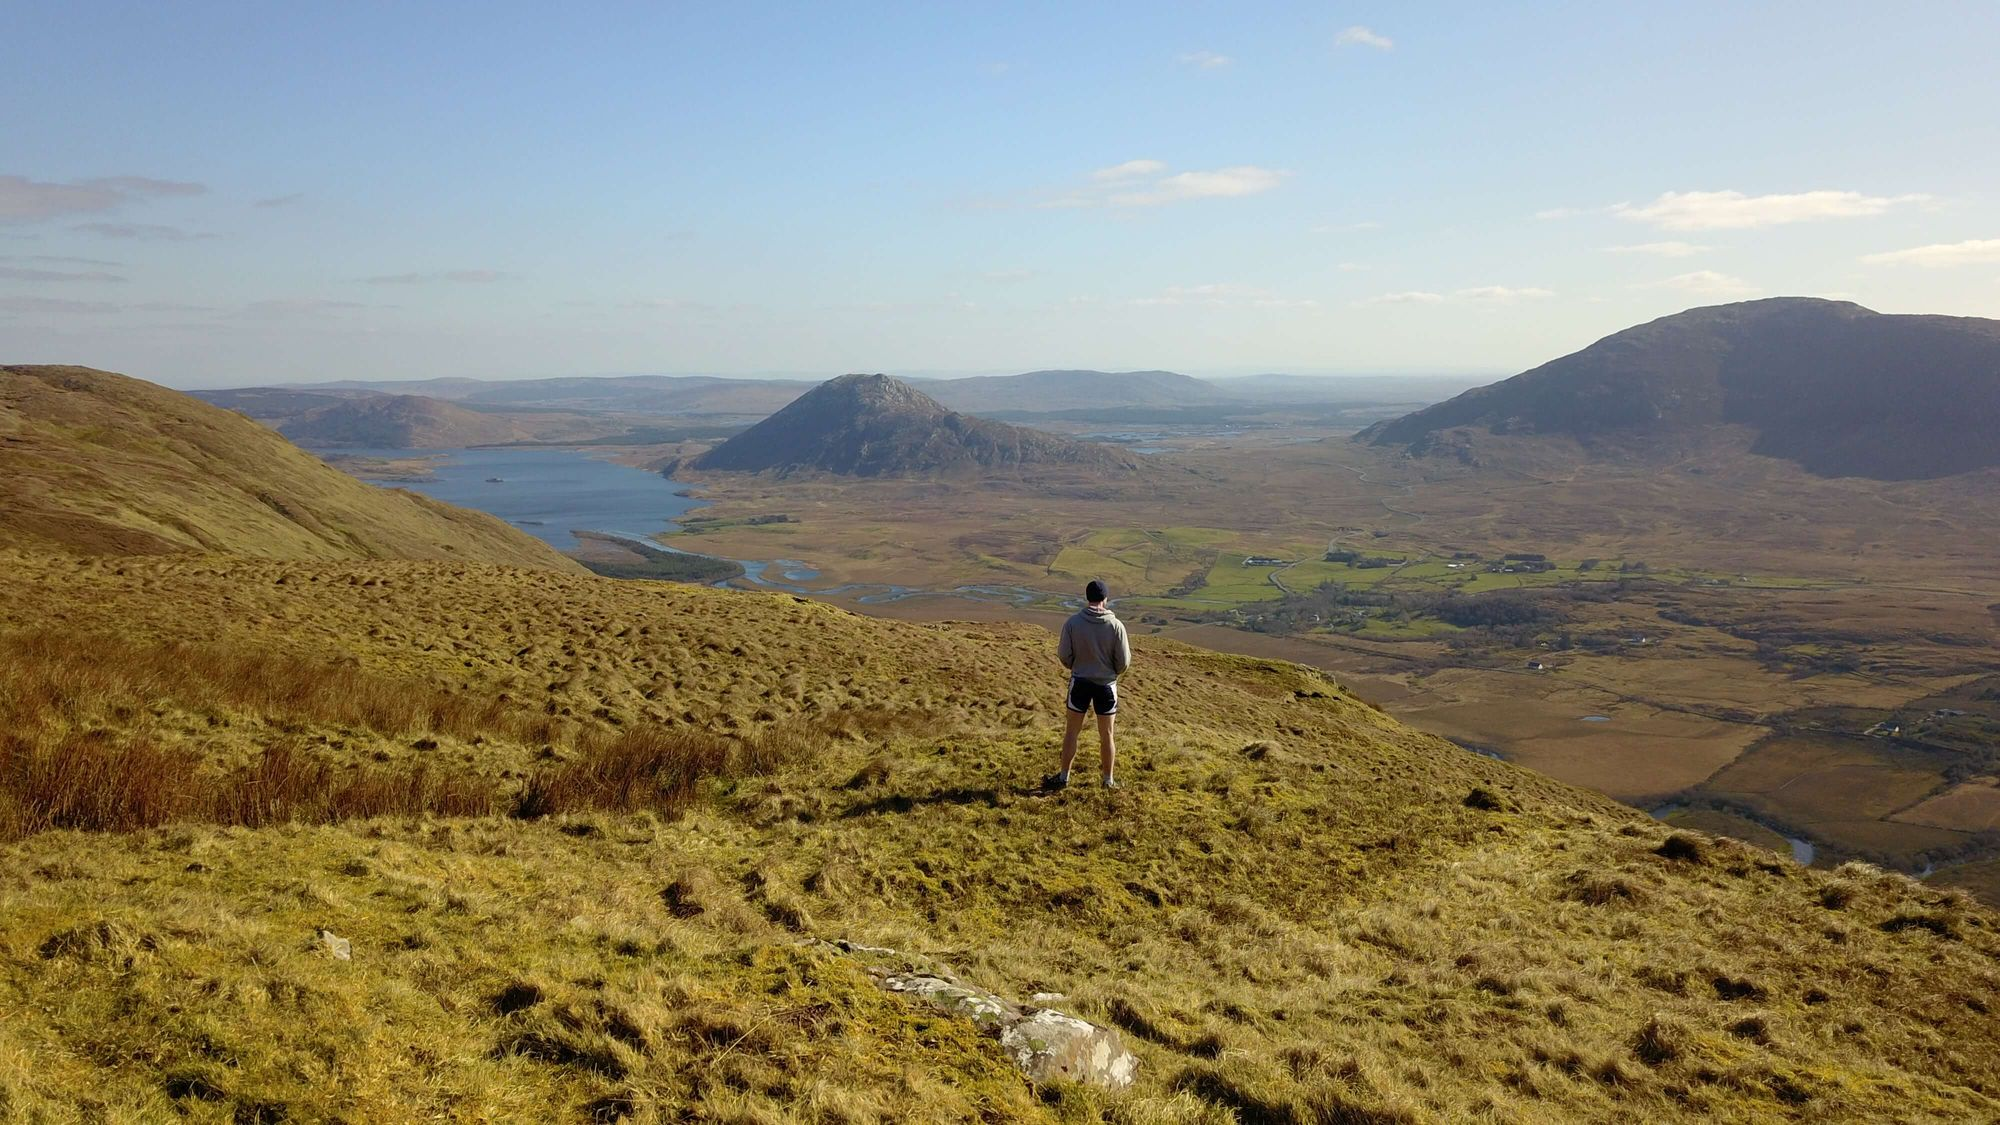 Eamon Keane looking out over Maum valley from the top of Log na Brice Mountain